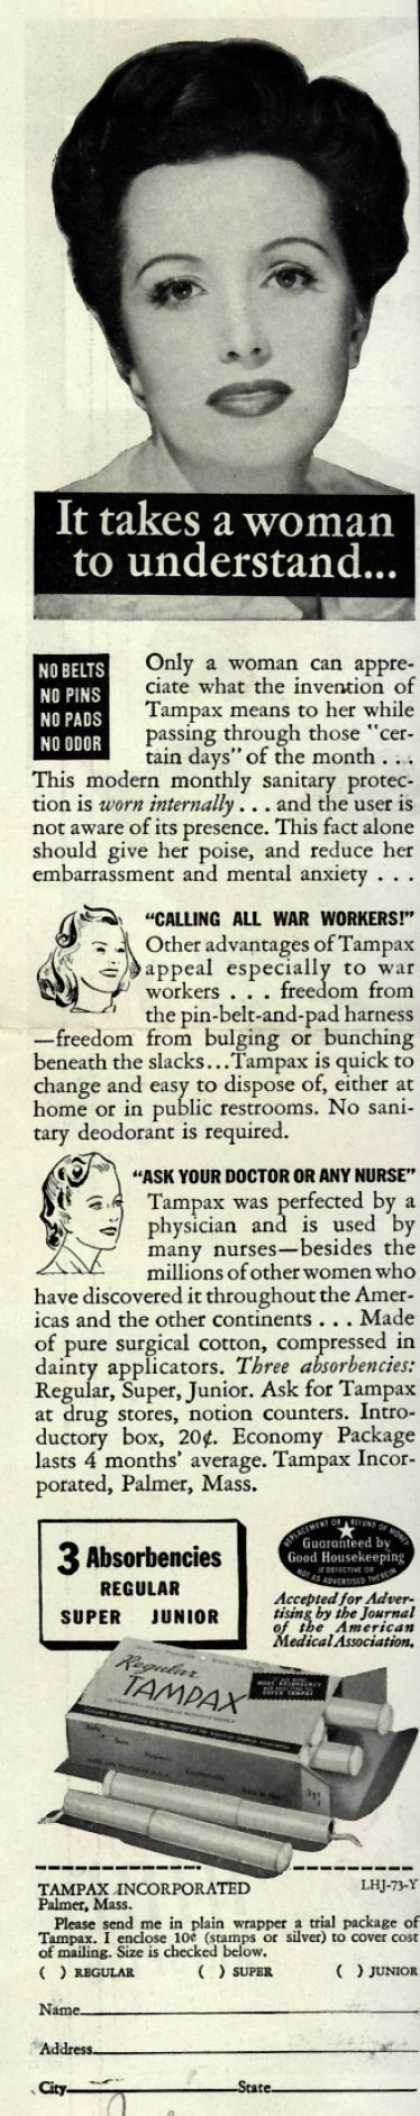 Tampax's Tampons – It takes a woman to understand... (1943)